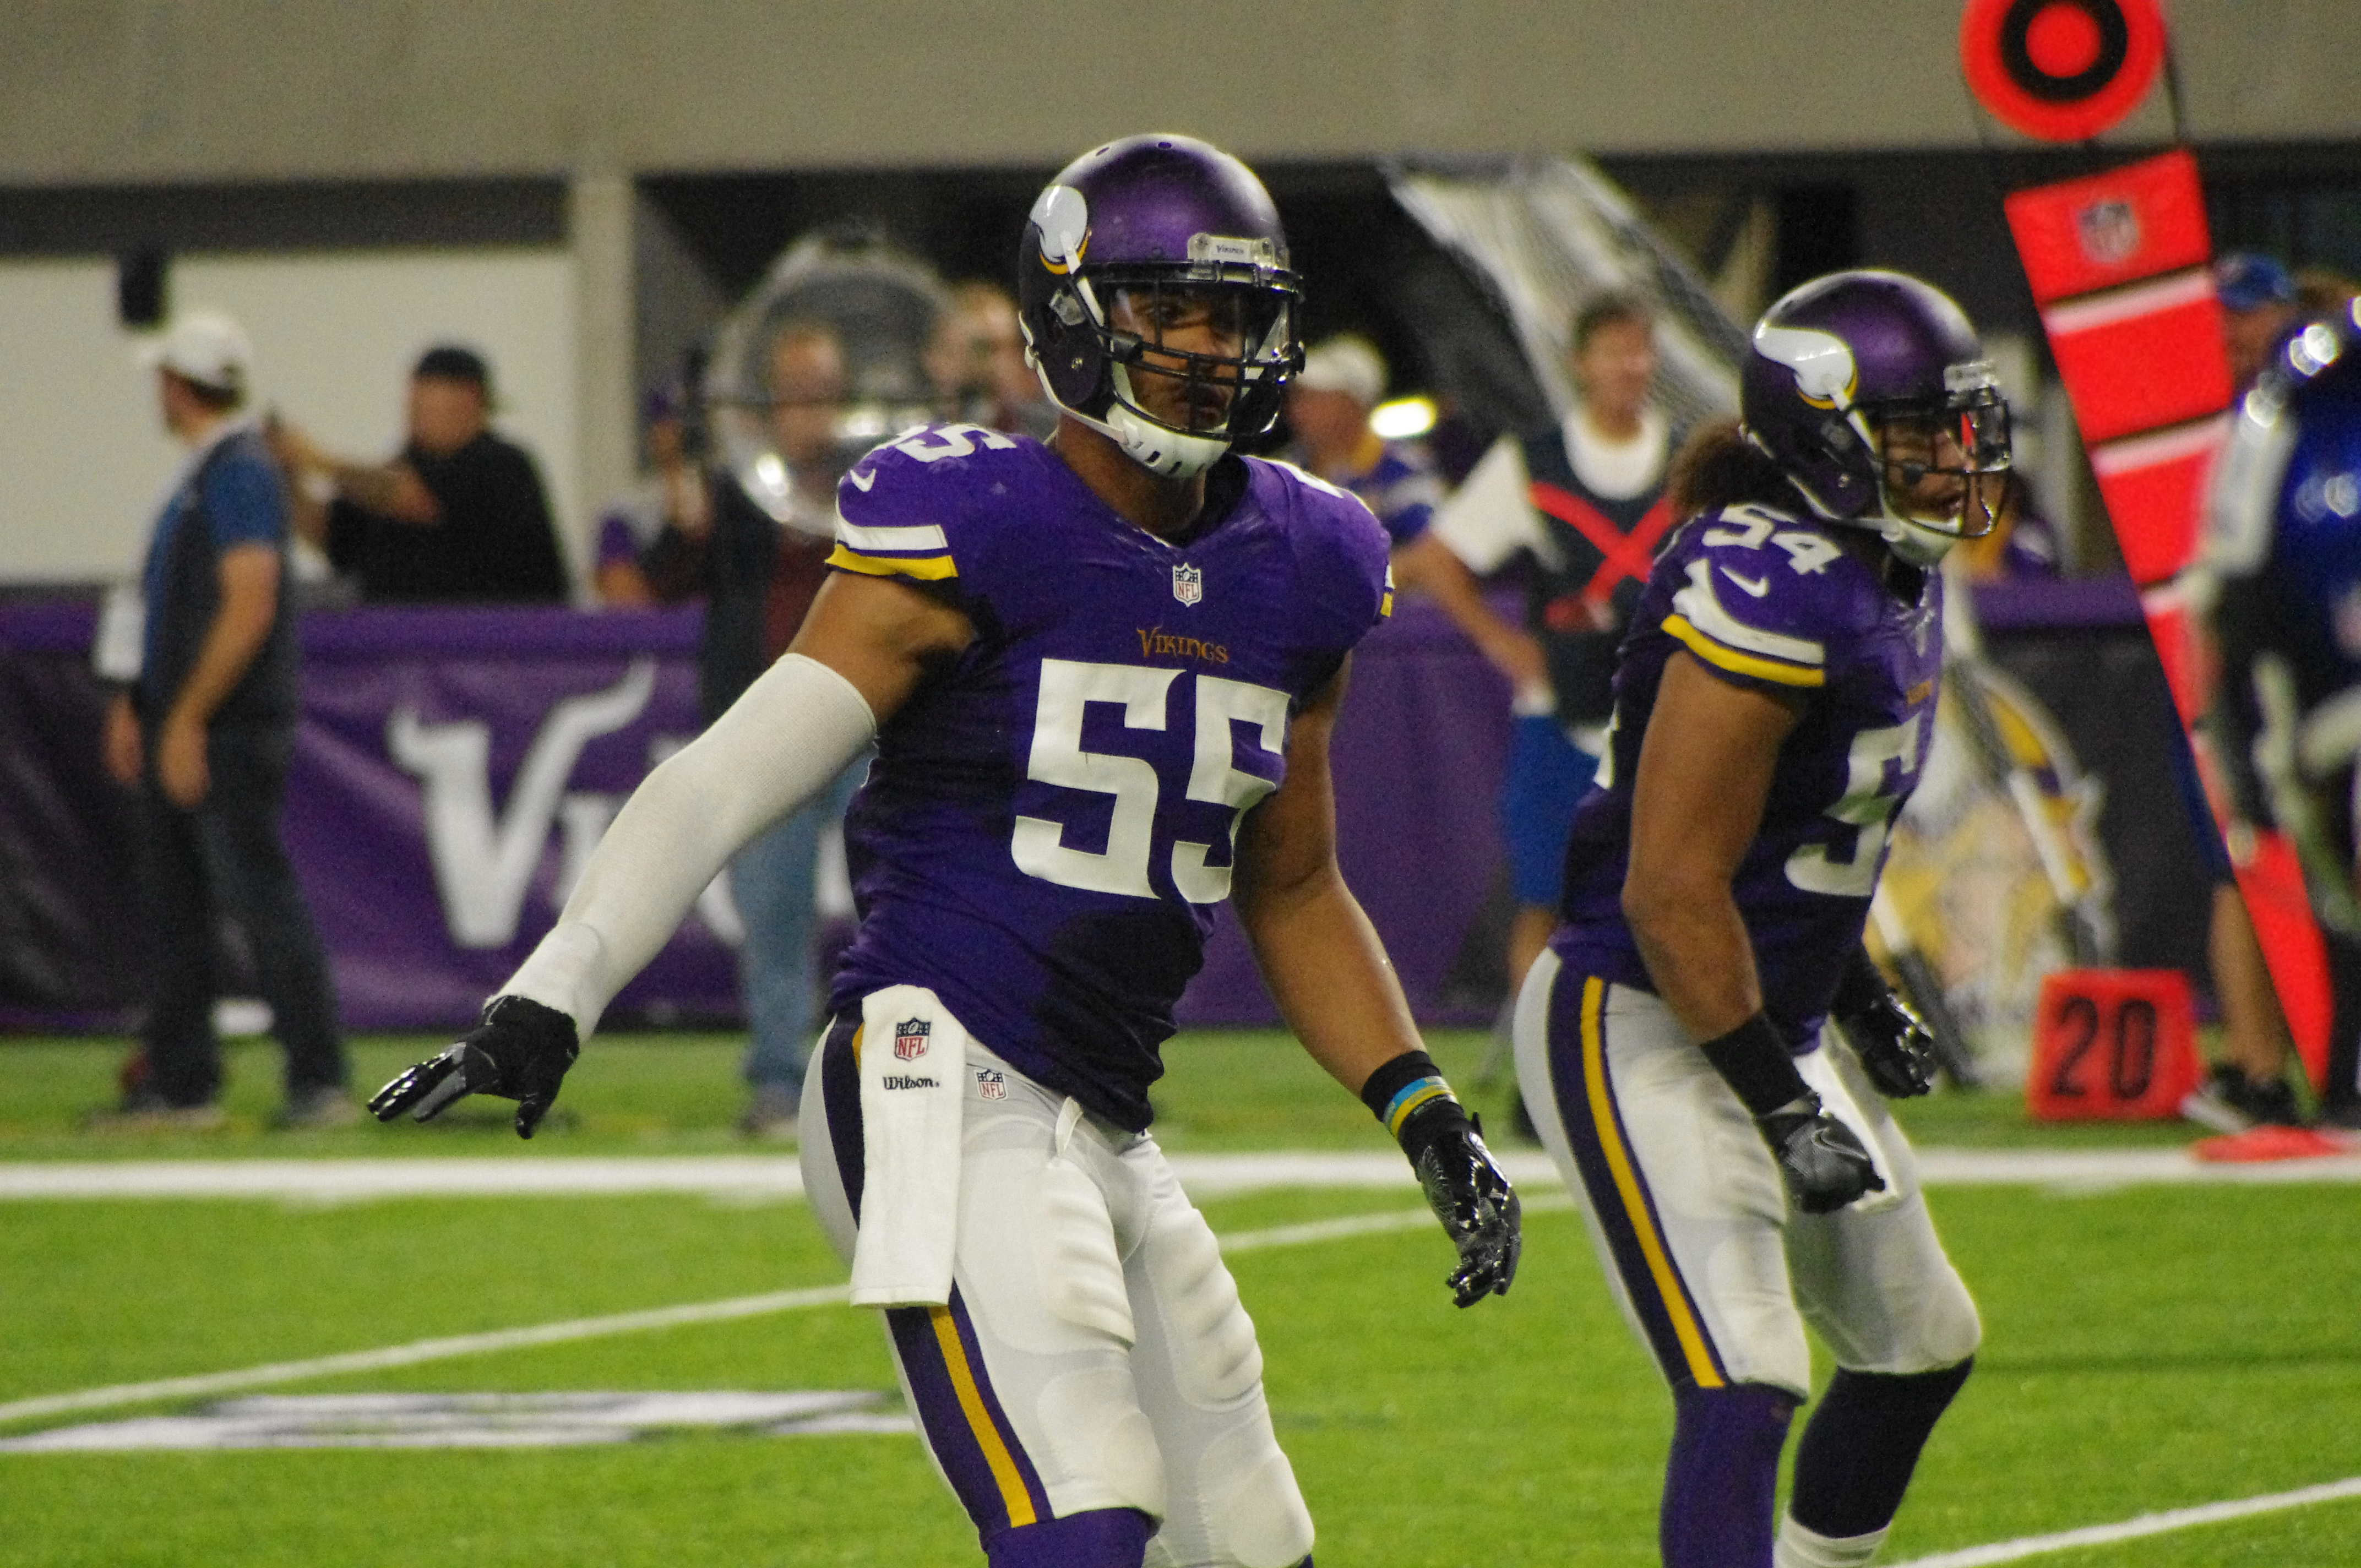 Anthony Barr Struggling to Make an Impact in His Third Season